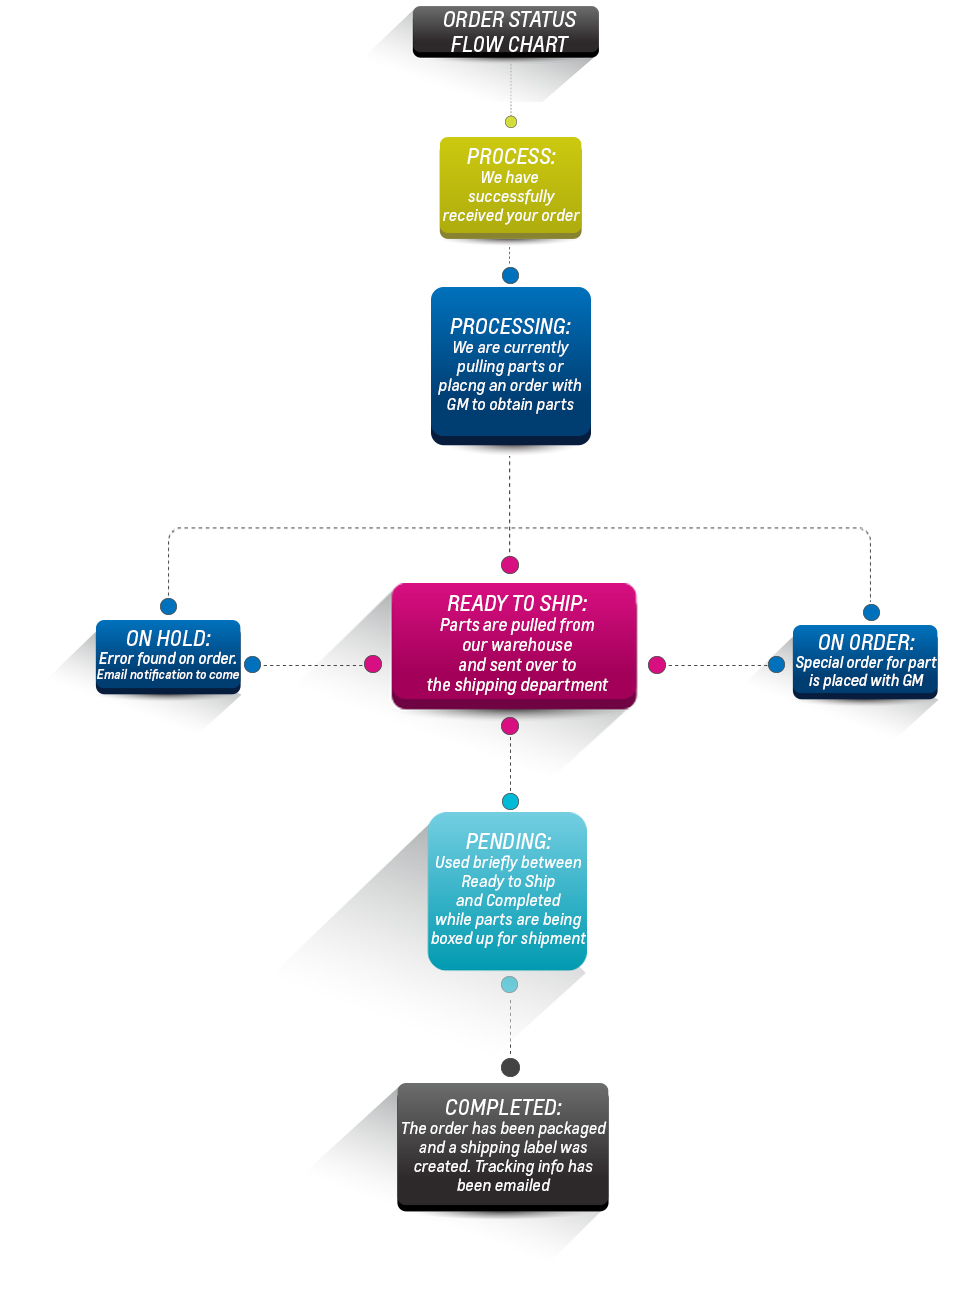 Gmpartsnow parts order status gm parts now parts and accessories gm parts now order status flow chart nvjuhfo Image collections